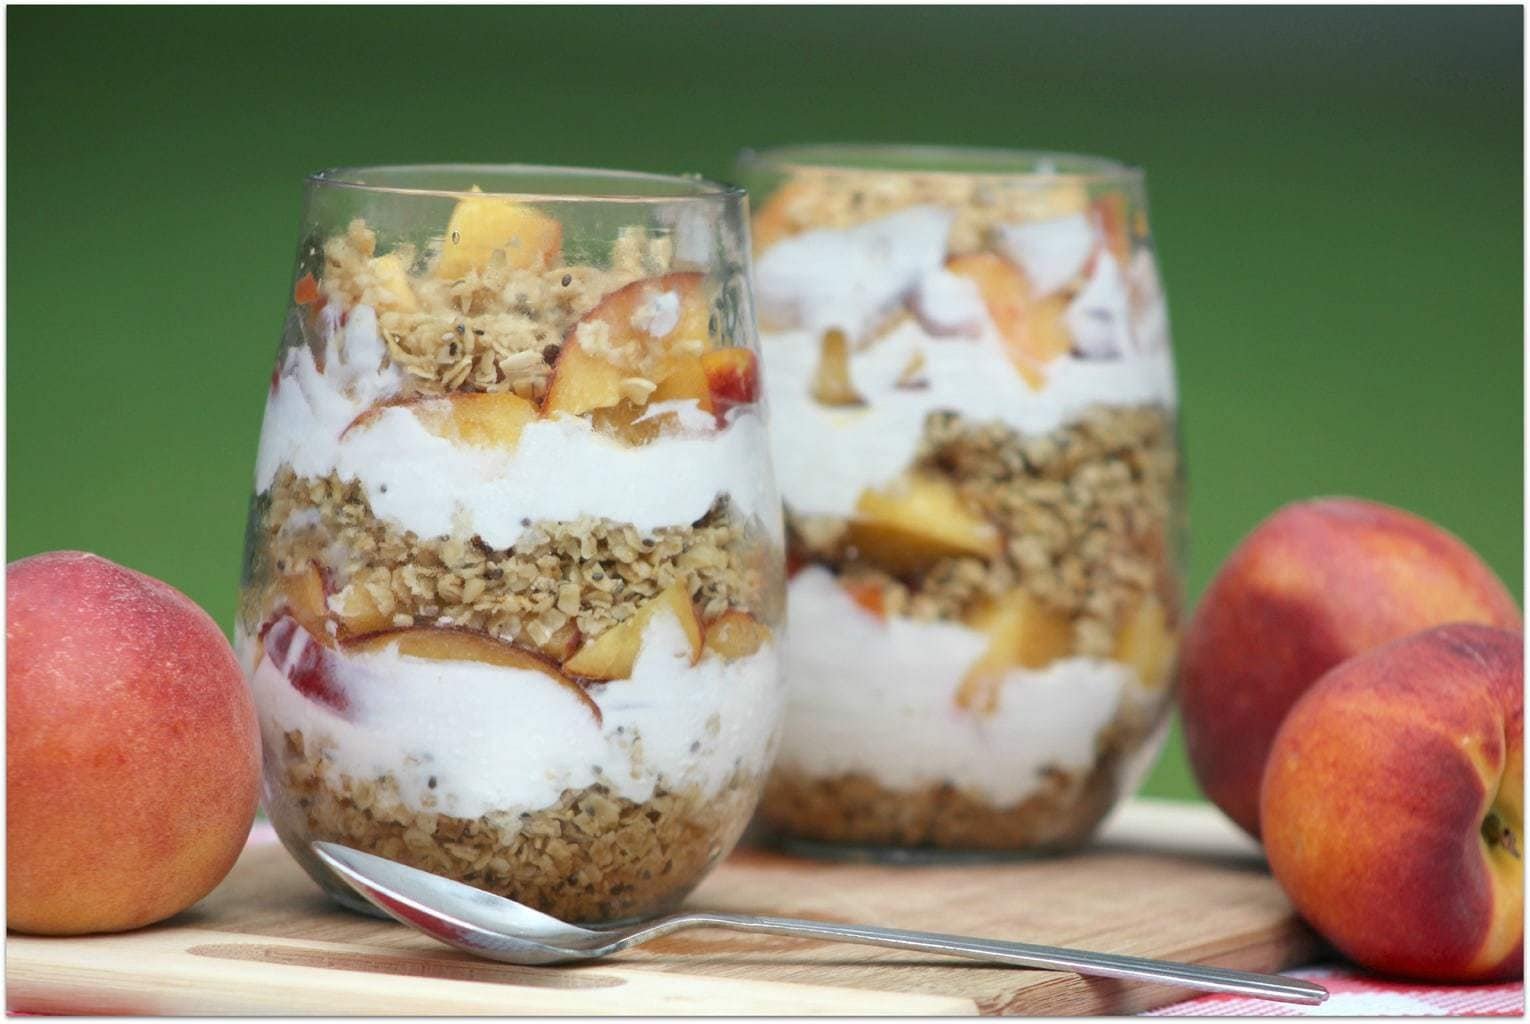 I love serving my family something special for breakfast, and this Peaches and Cream Parfait is just the perfect healthy food to start your day. We can get peaches almost all year round now, but in the summer they are really perfect. This is such an easy recipe, too. Enjoy!